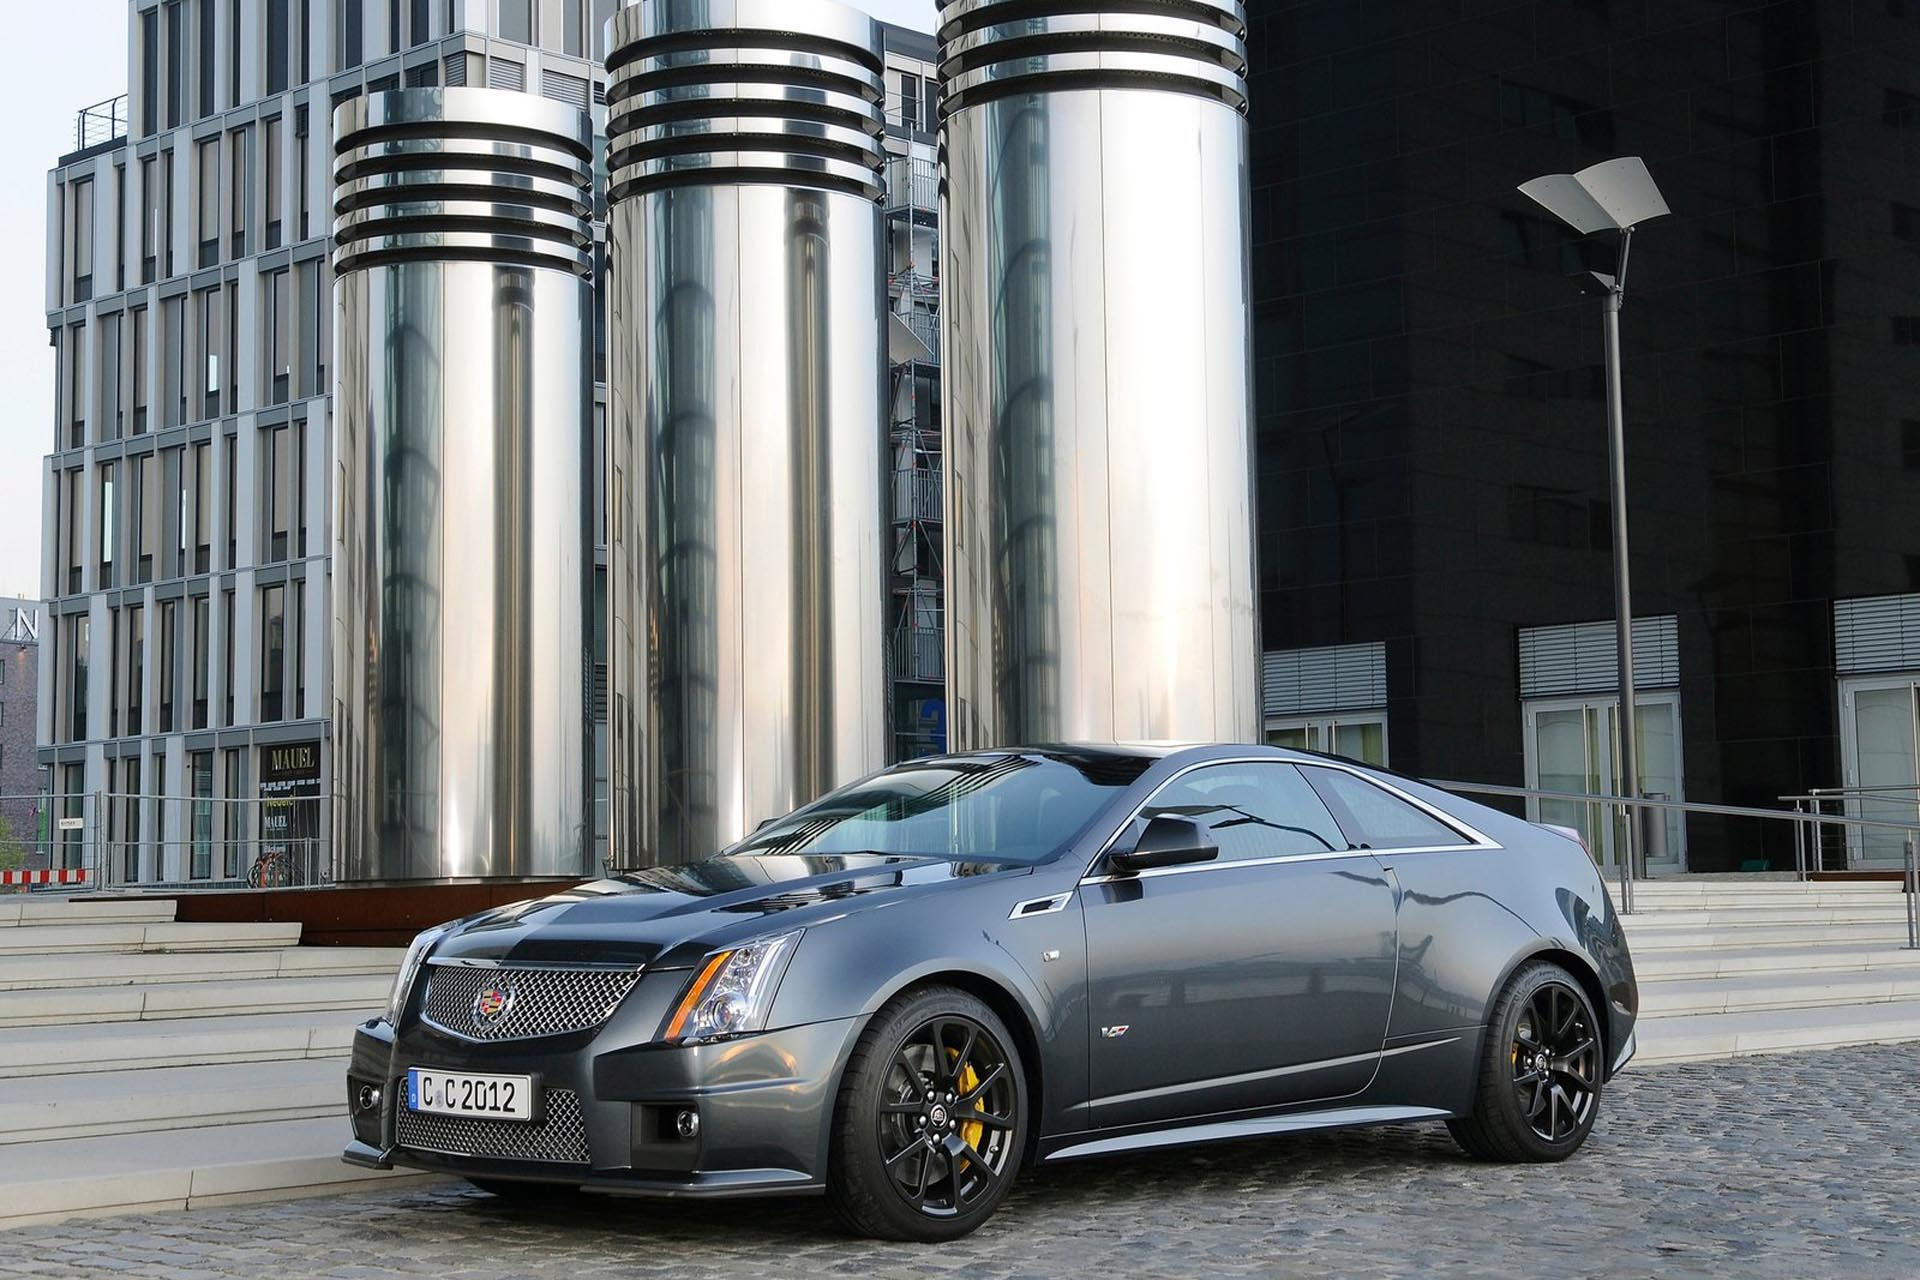 """<b>Why:</b> Hear that whining, hissing sound? It's not the wife getting riled up that you didn't load the dishwasher to code: it's an Eaton supercharger the size of a toaster oven stuffing an LSA V8 full of gasoline and boost. Partly, that's how CTS-V makes a whopping 556 horsepower, which can put the rear tires up in smoke on command if desired, or, launch you from 0 to 100 km/h faster than she can say """"not tonight honey."""""""